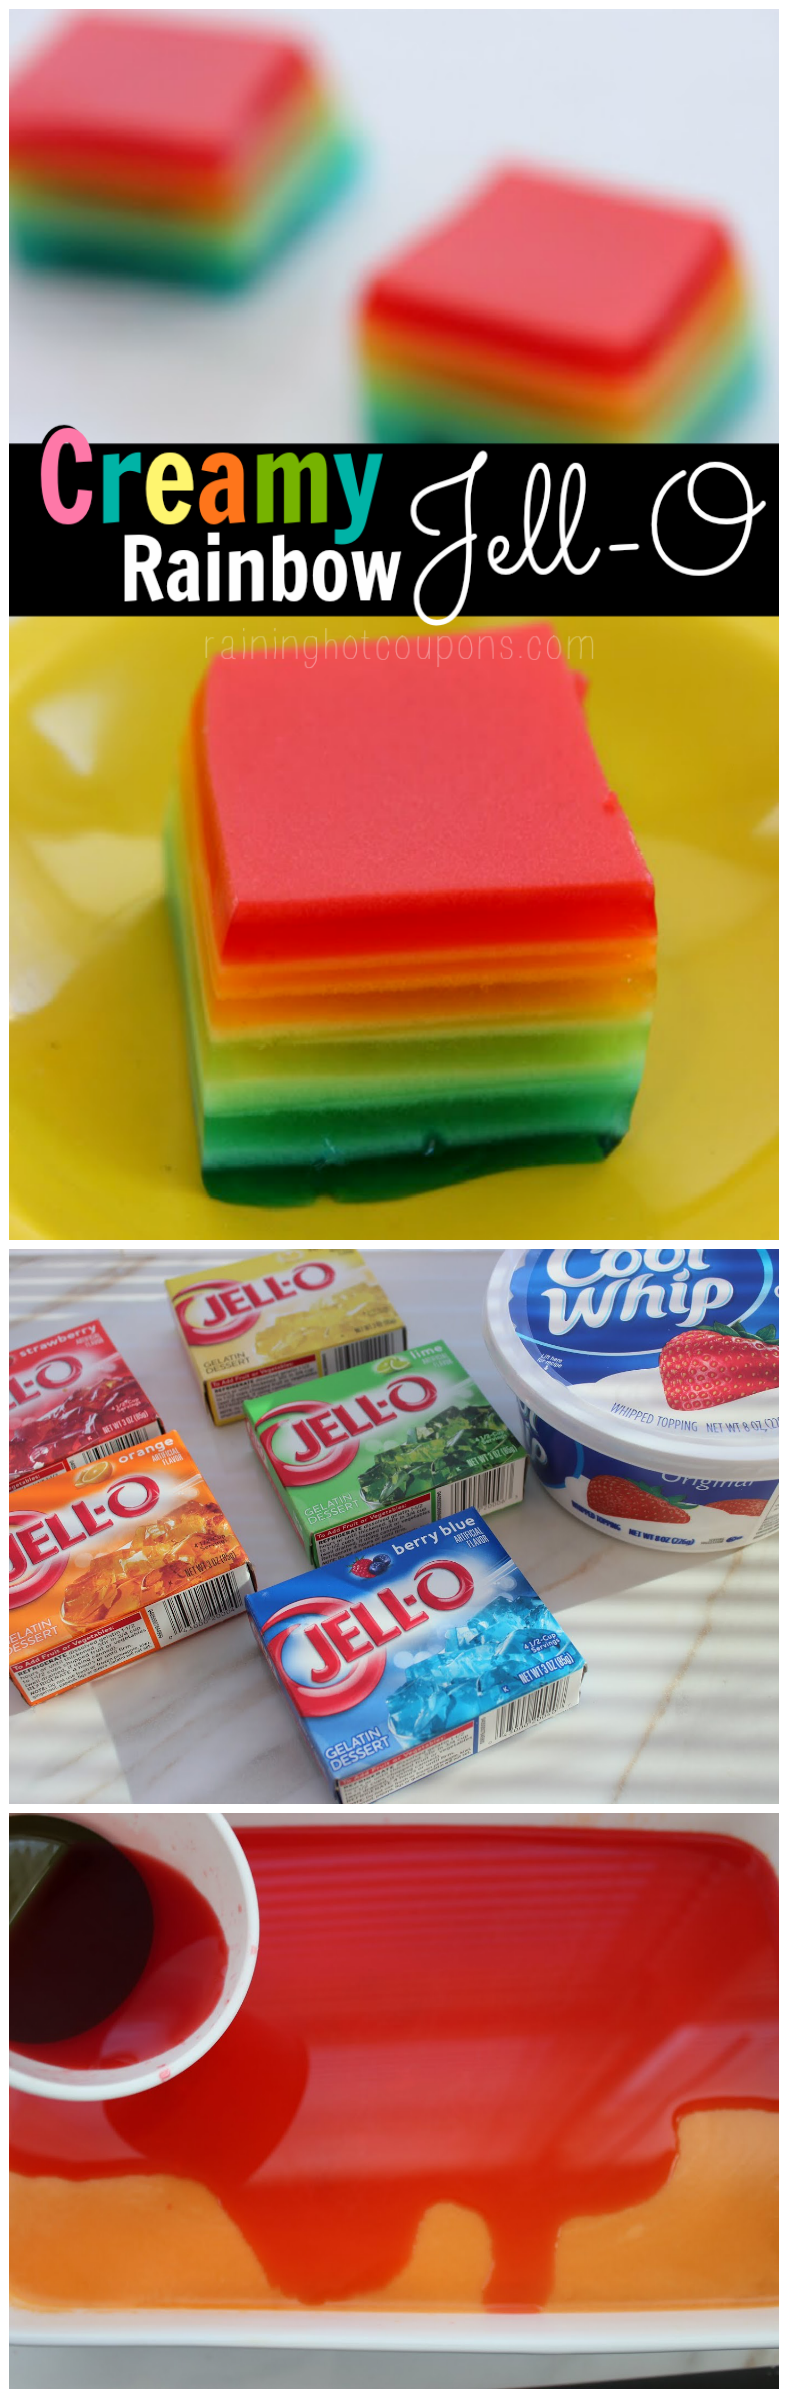 rainbow jello collage.png Creamy Rainbow Jell O